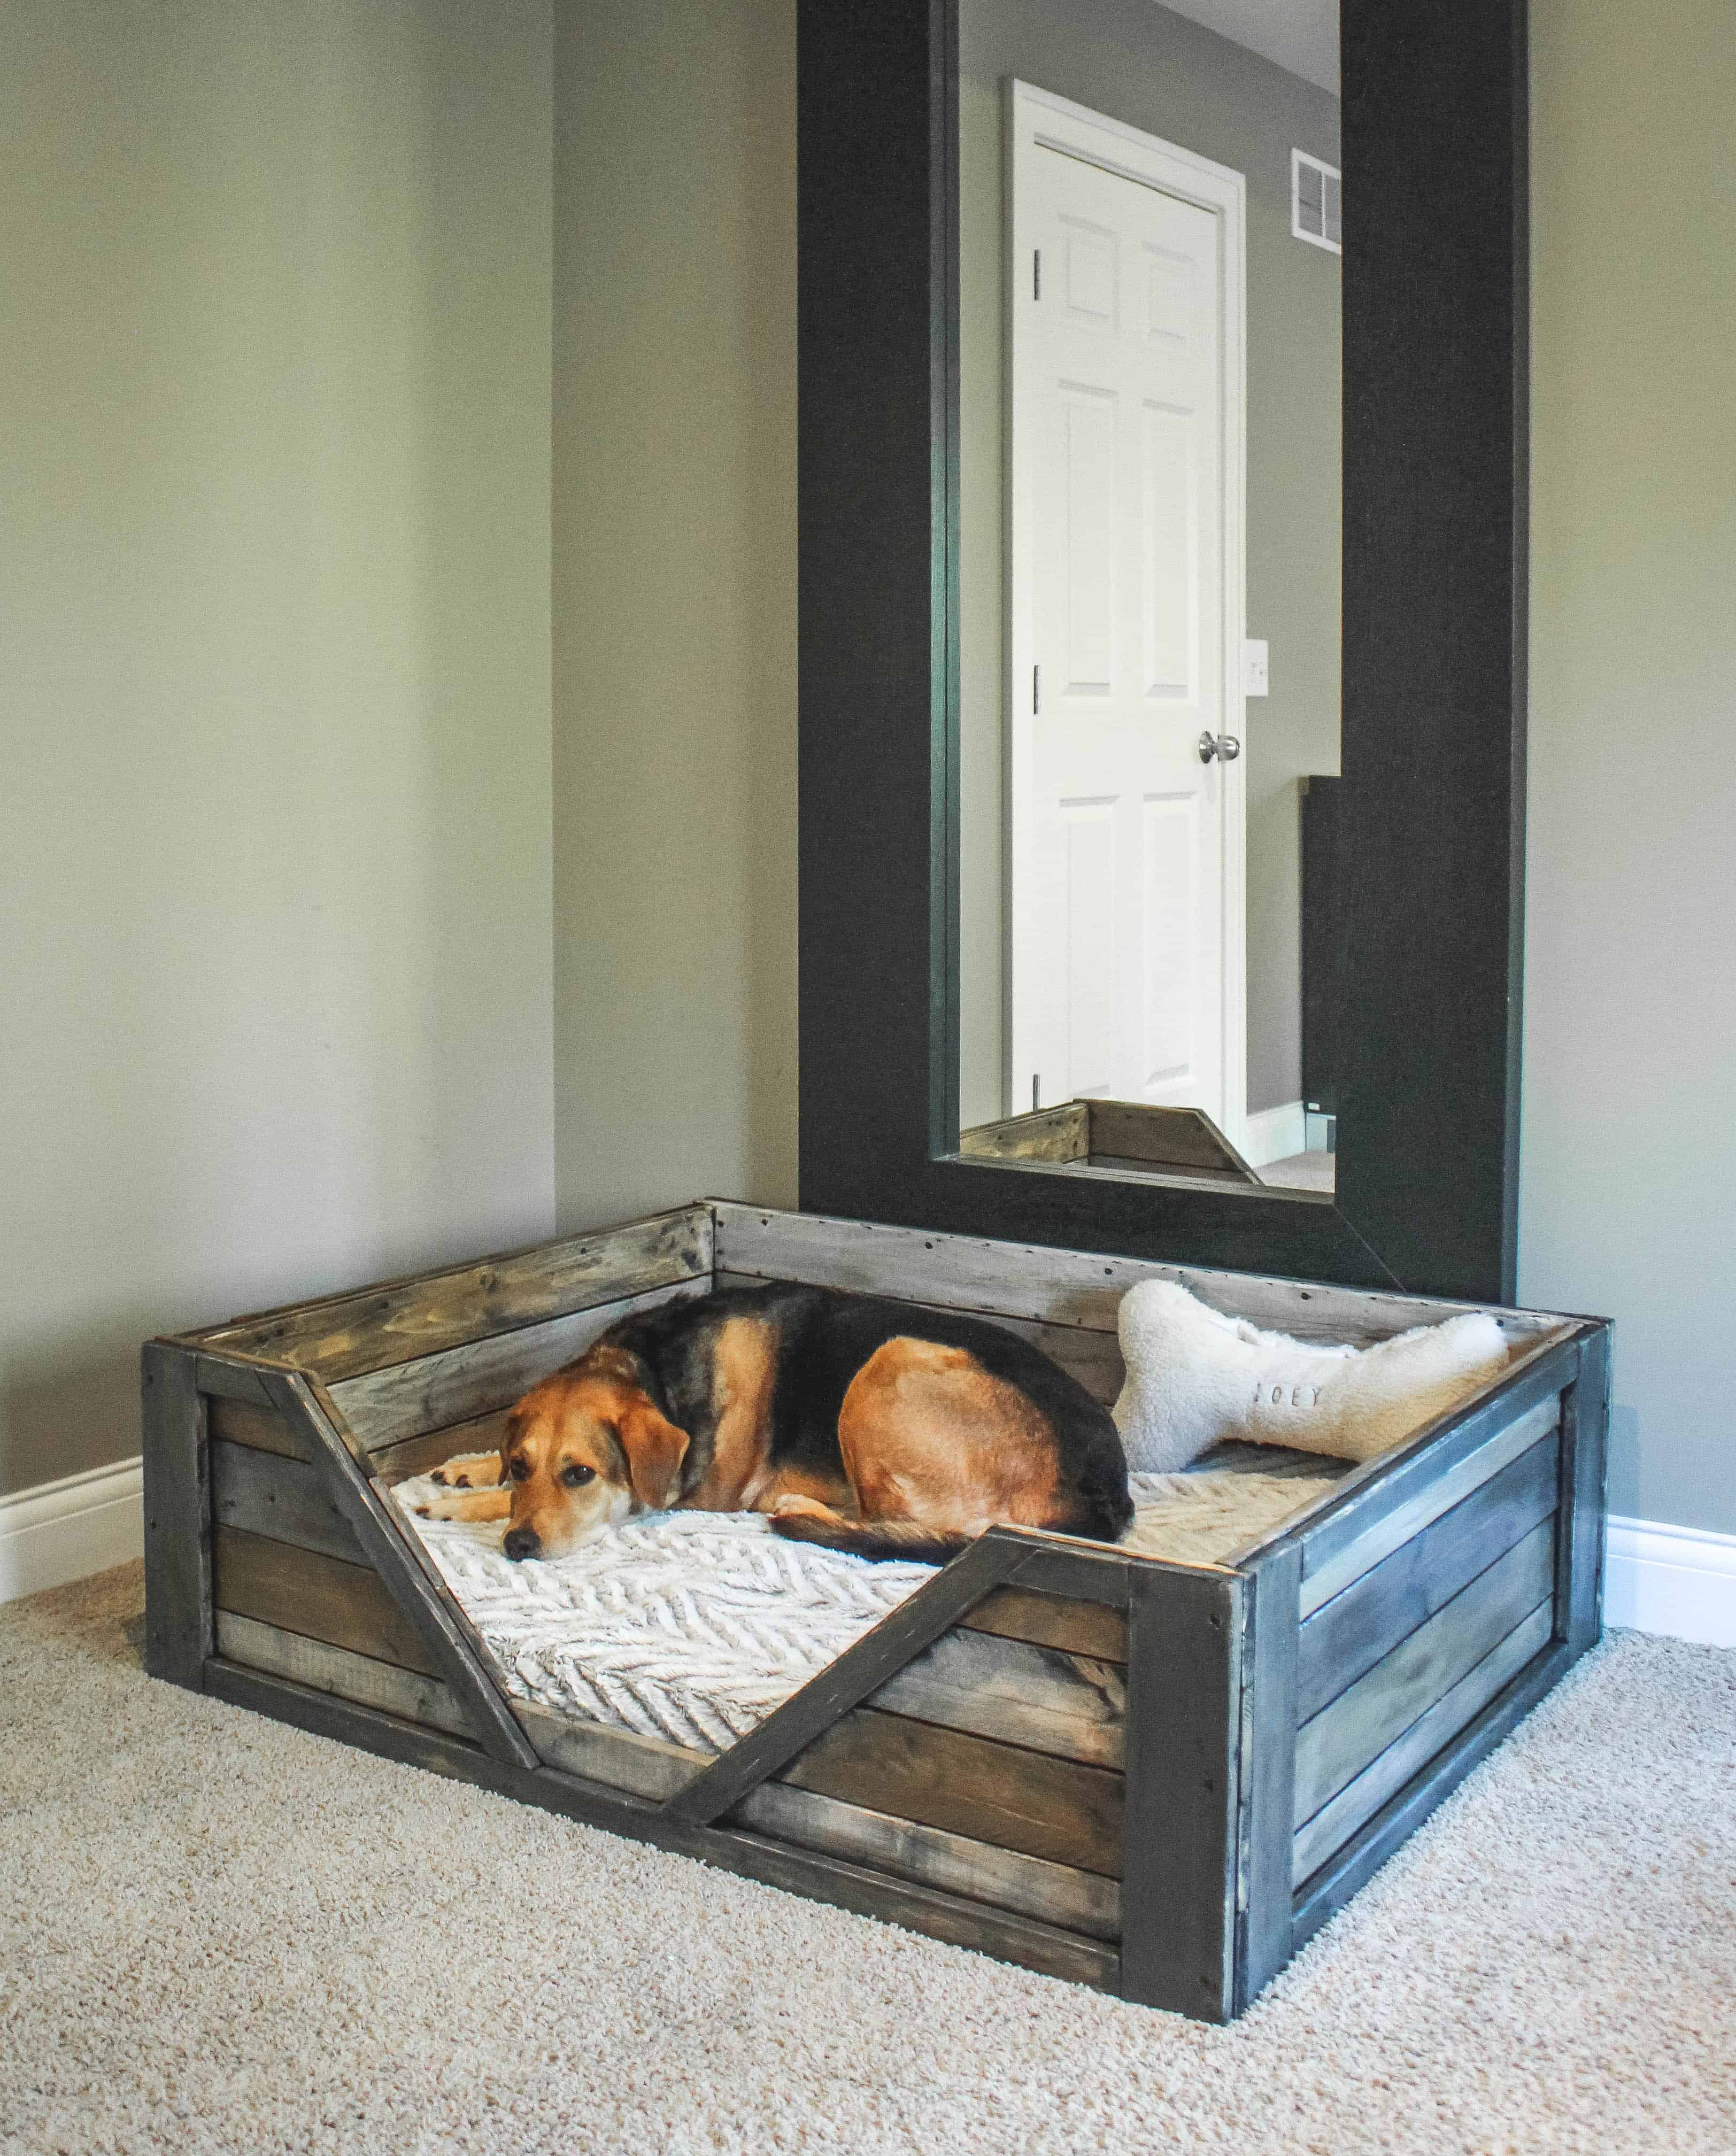 Spectacular Recycled pallet bed frames for your home hometshetics